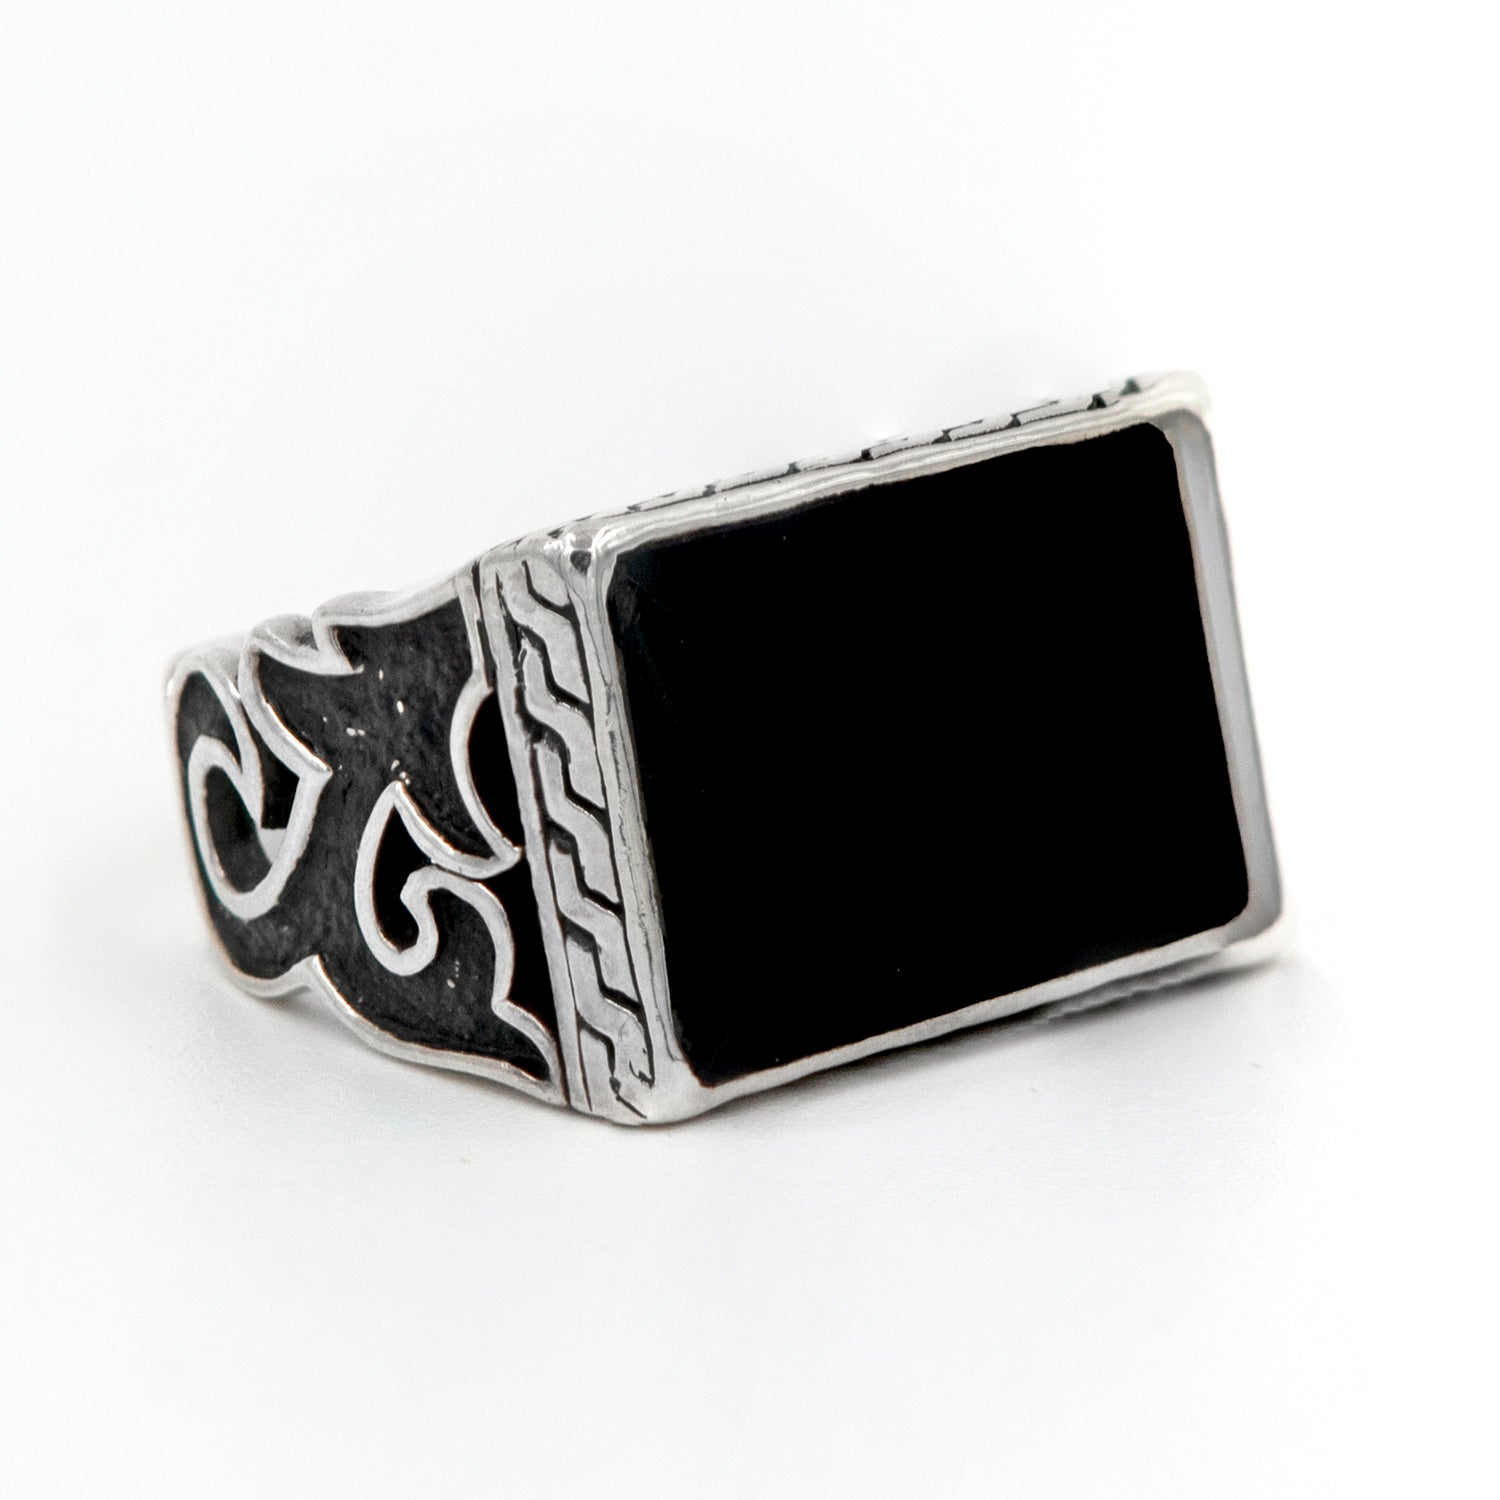 Bali Sterling Silver Men's Onyx Signet Ring